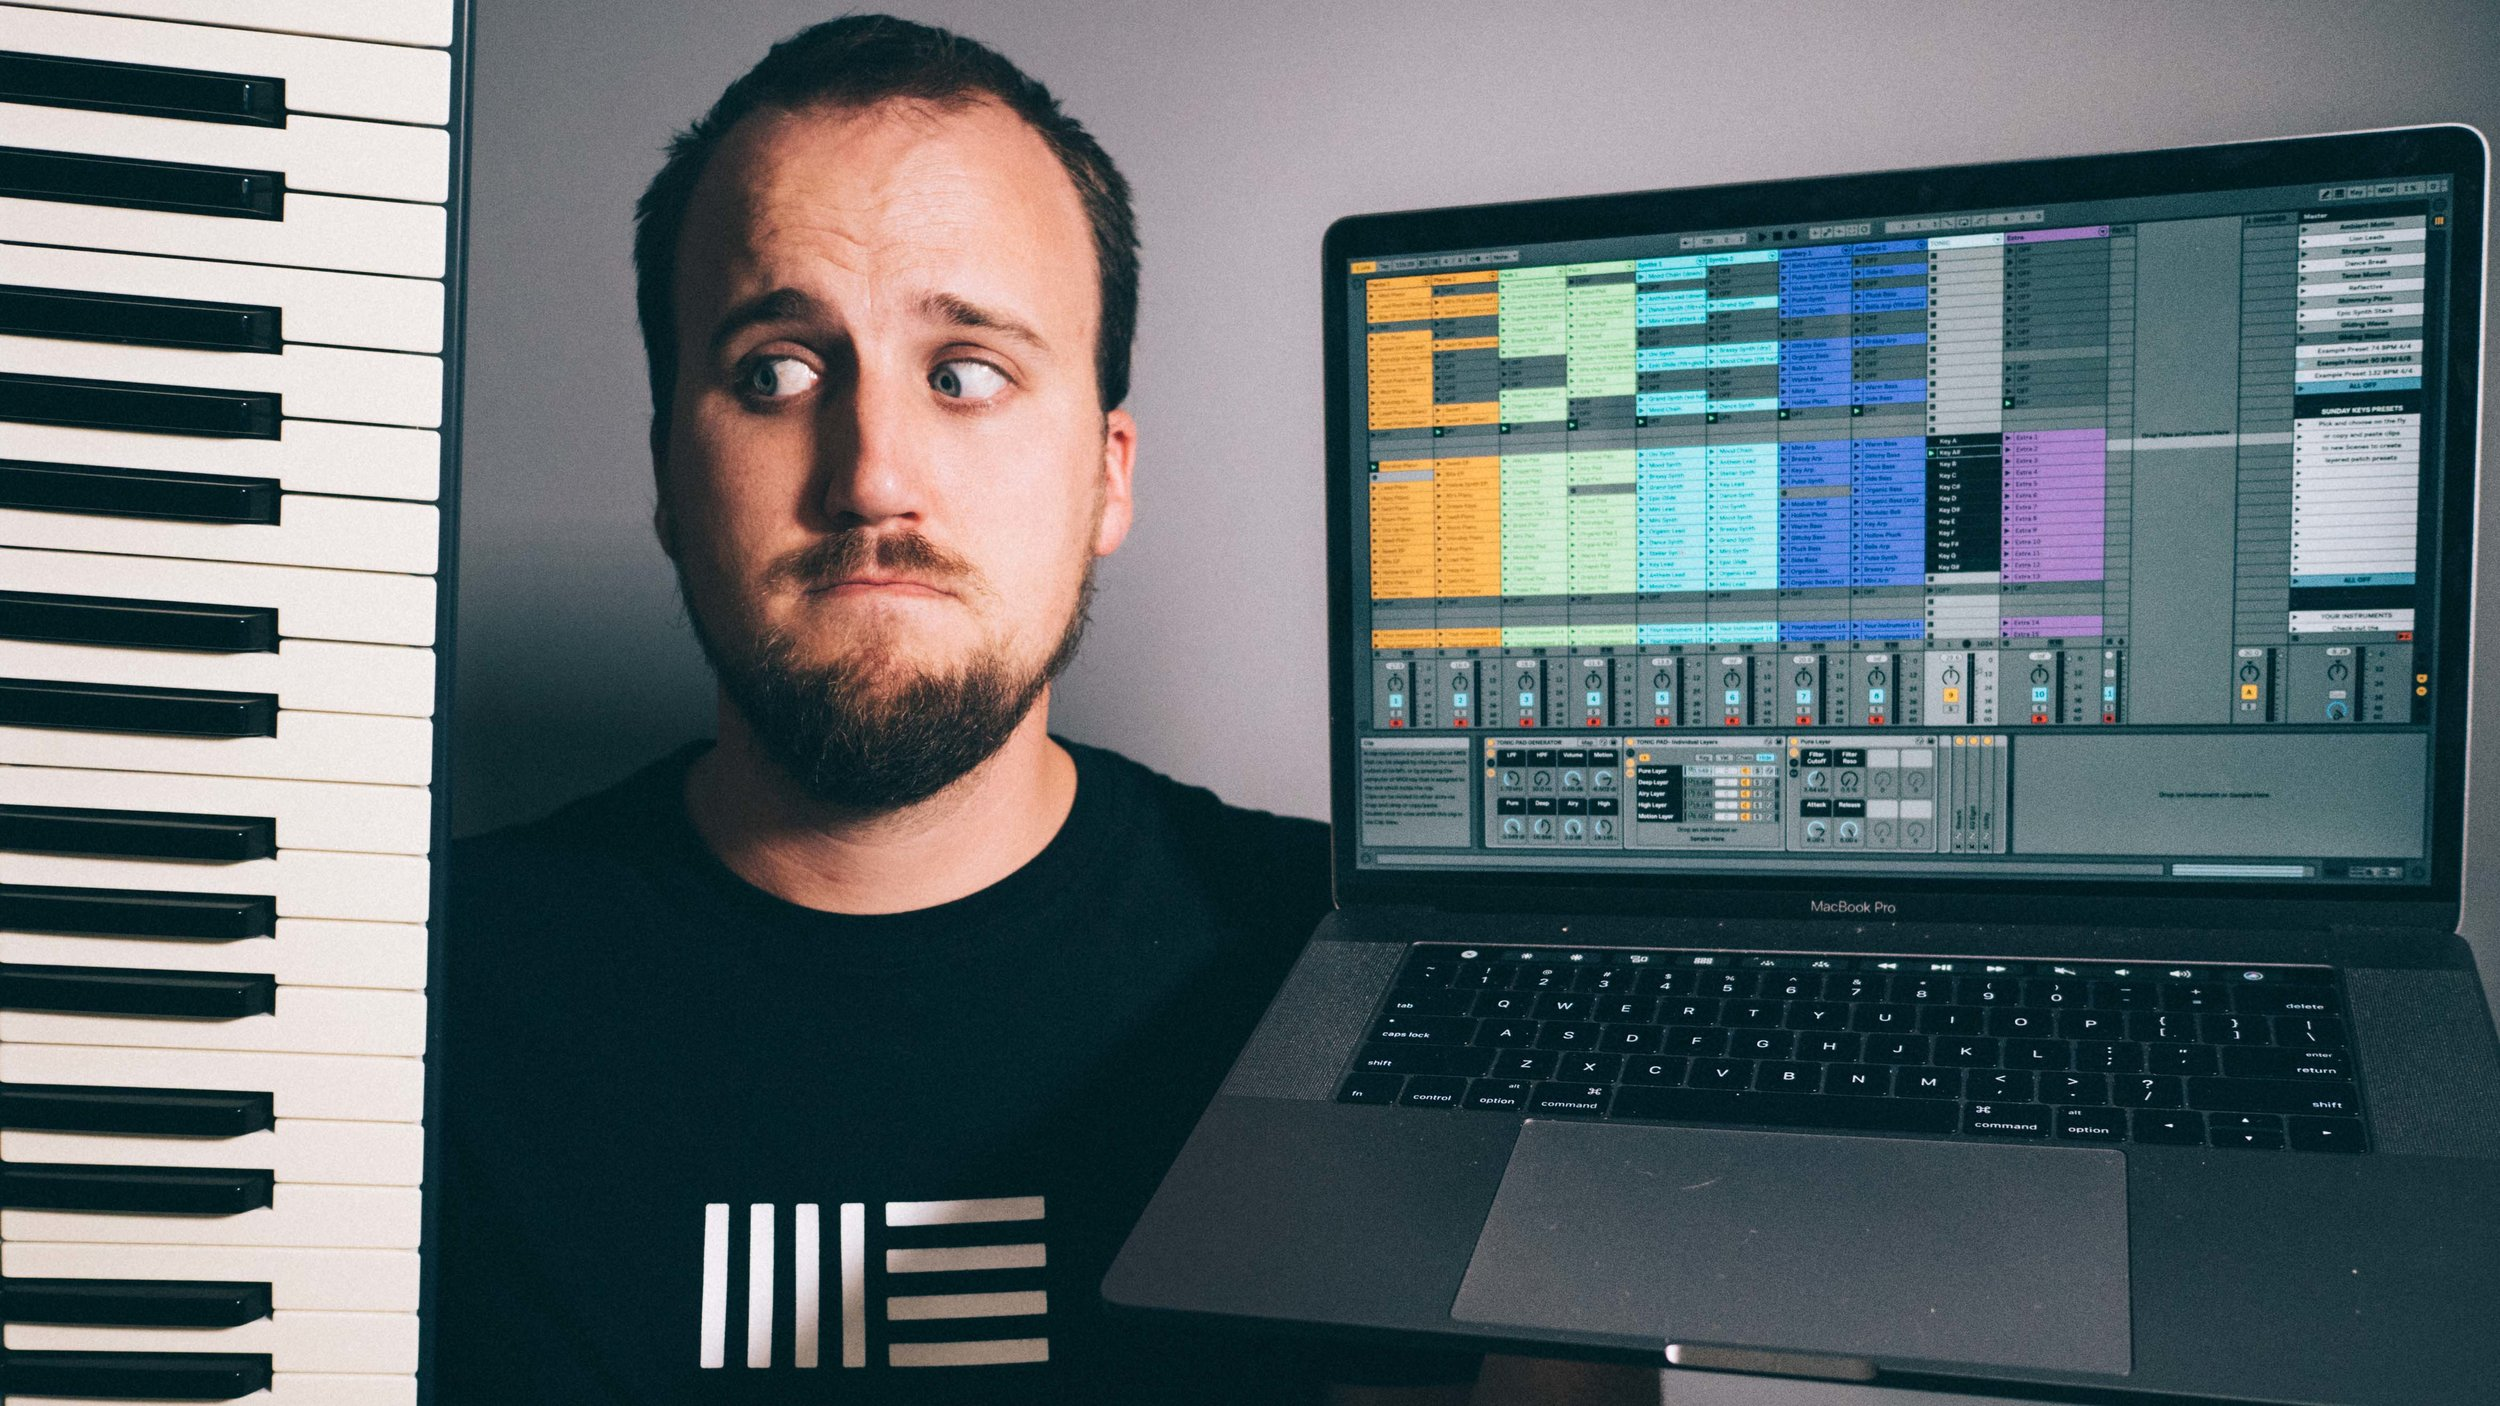 worship keyboard rig — Blog — Churchfront with Jake Gosselin